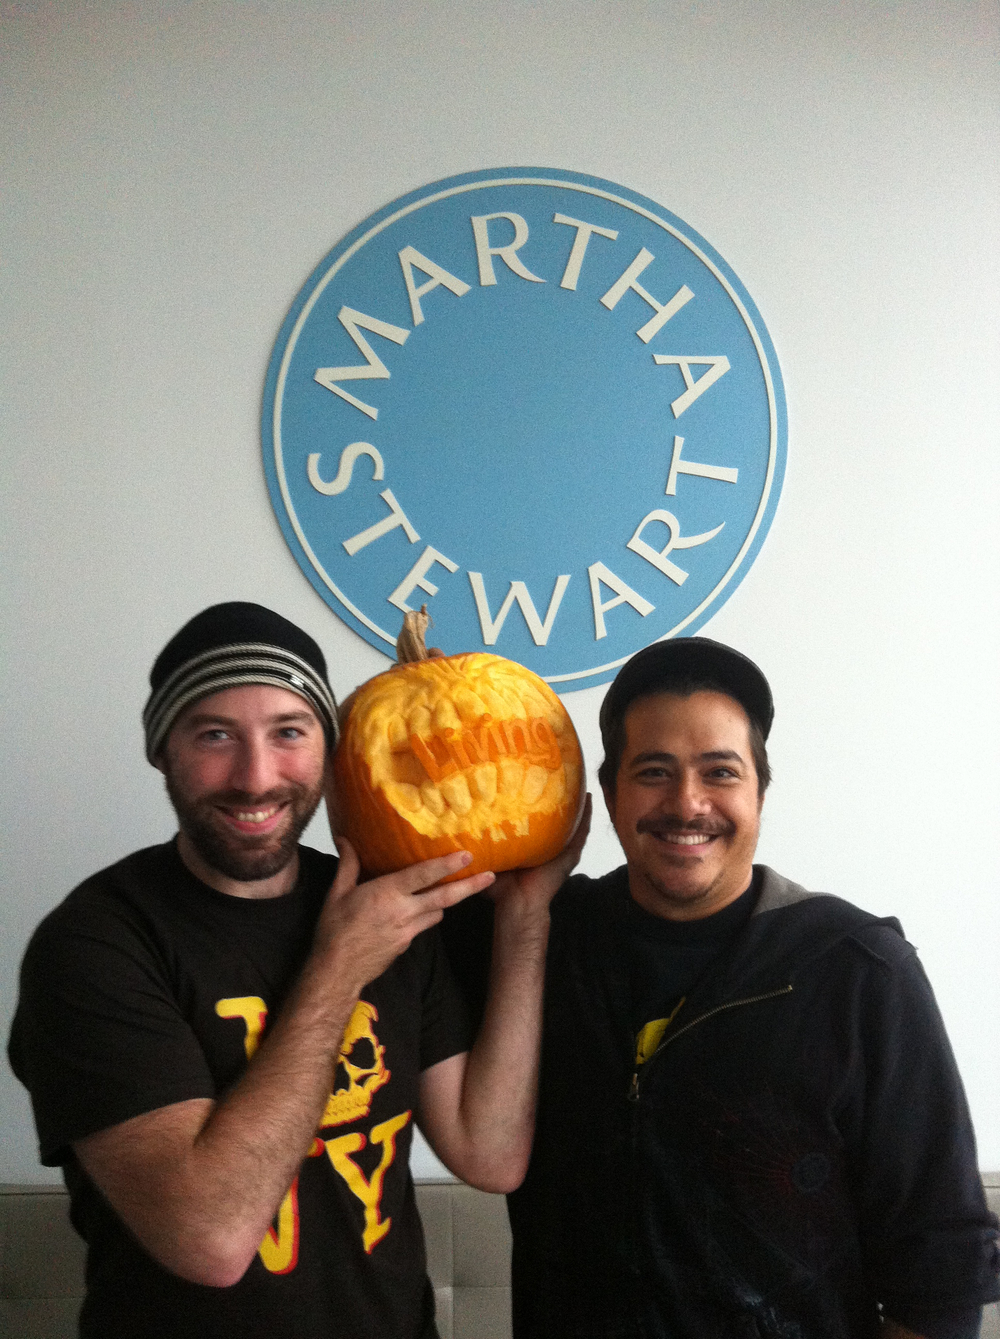 Marc and Chris carving over at Martha Stewart Omnimedia.